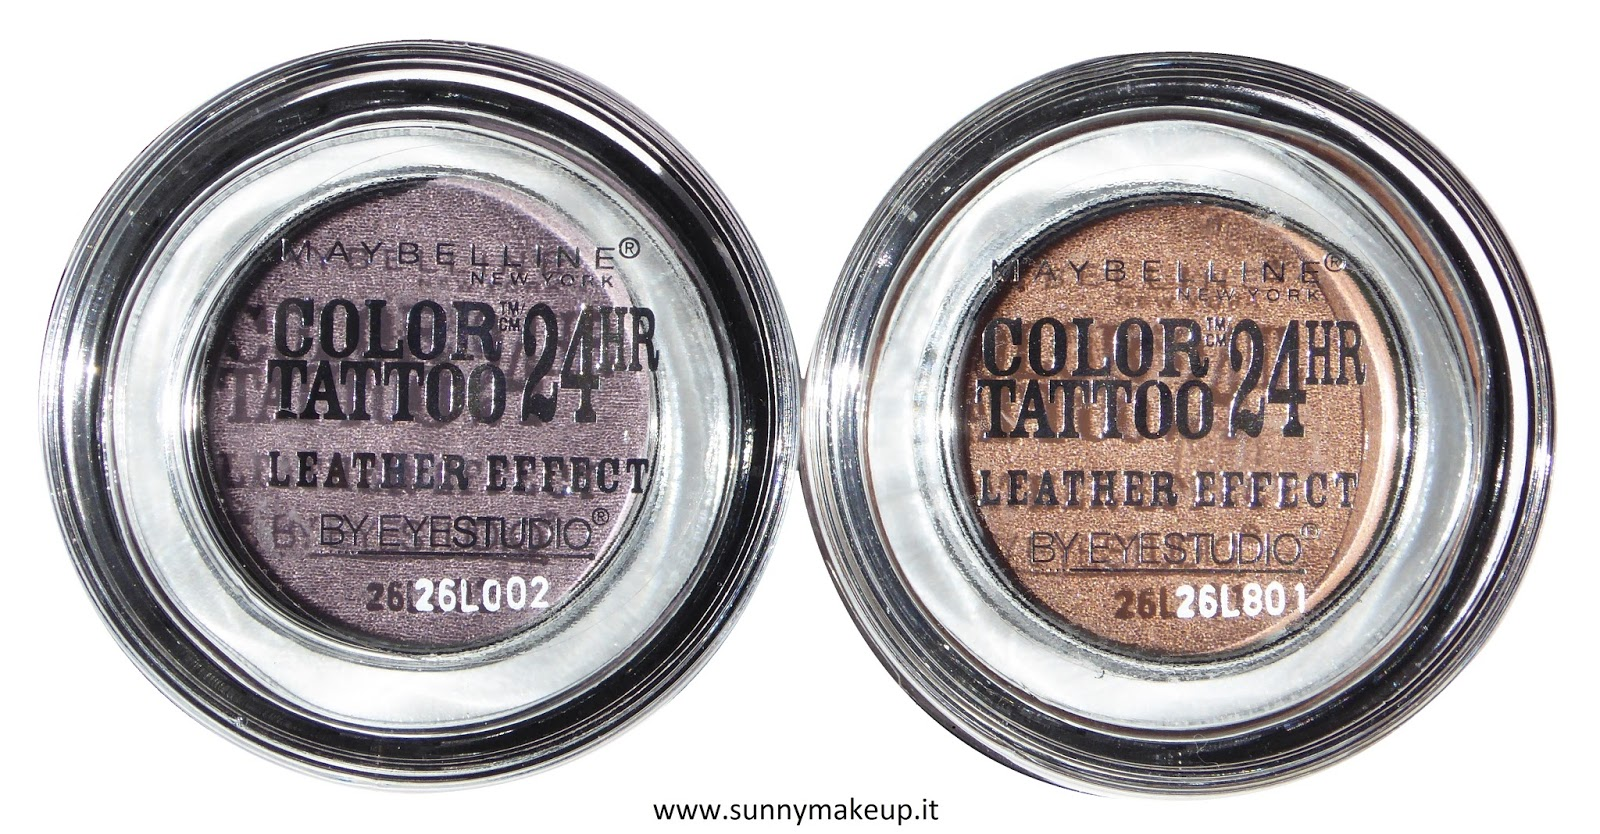 Maybelline - Color Tattoo Leather 24hr